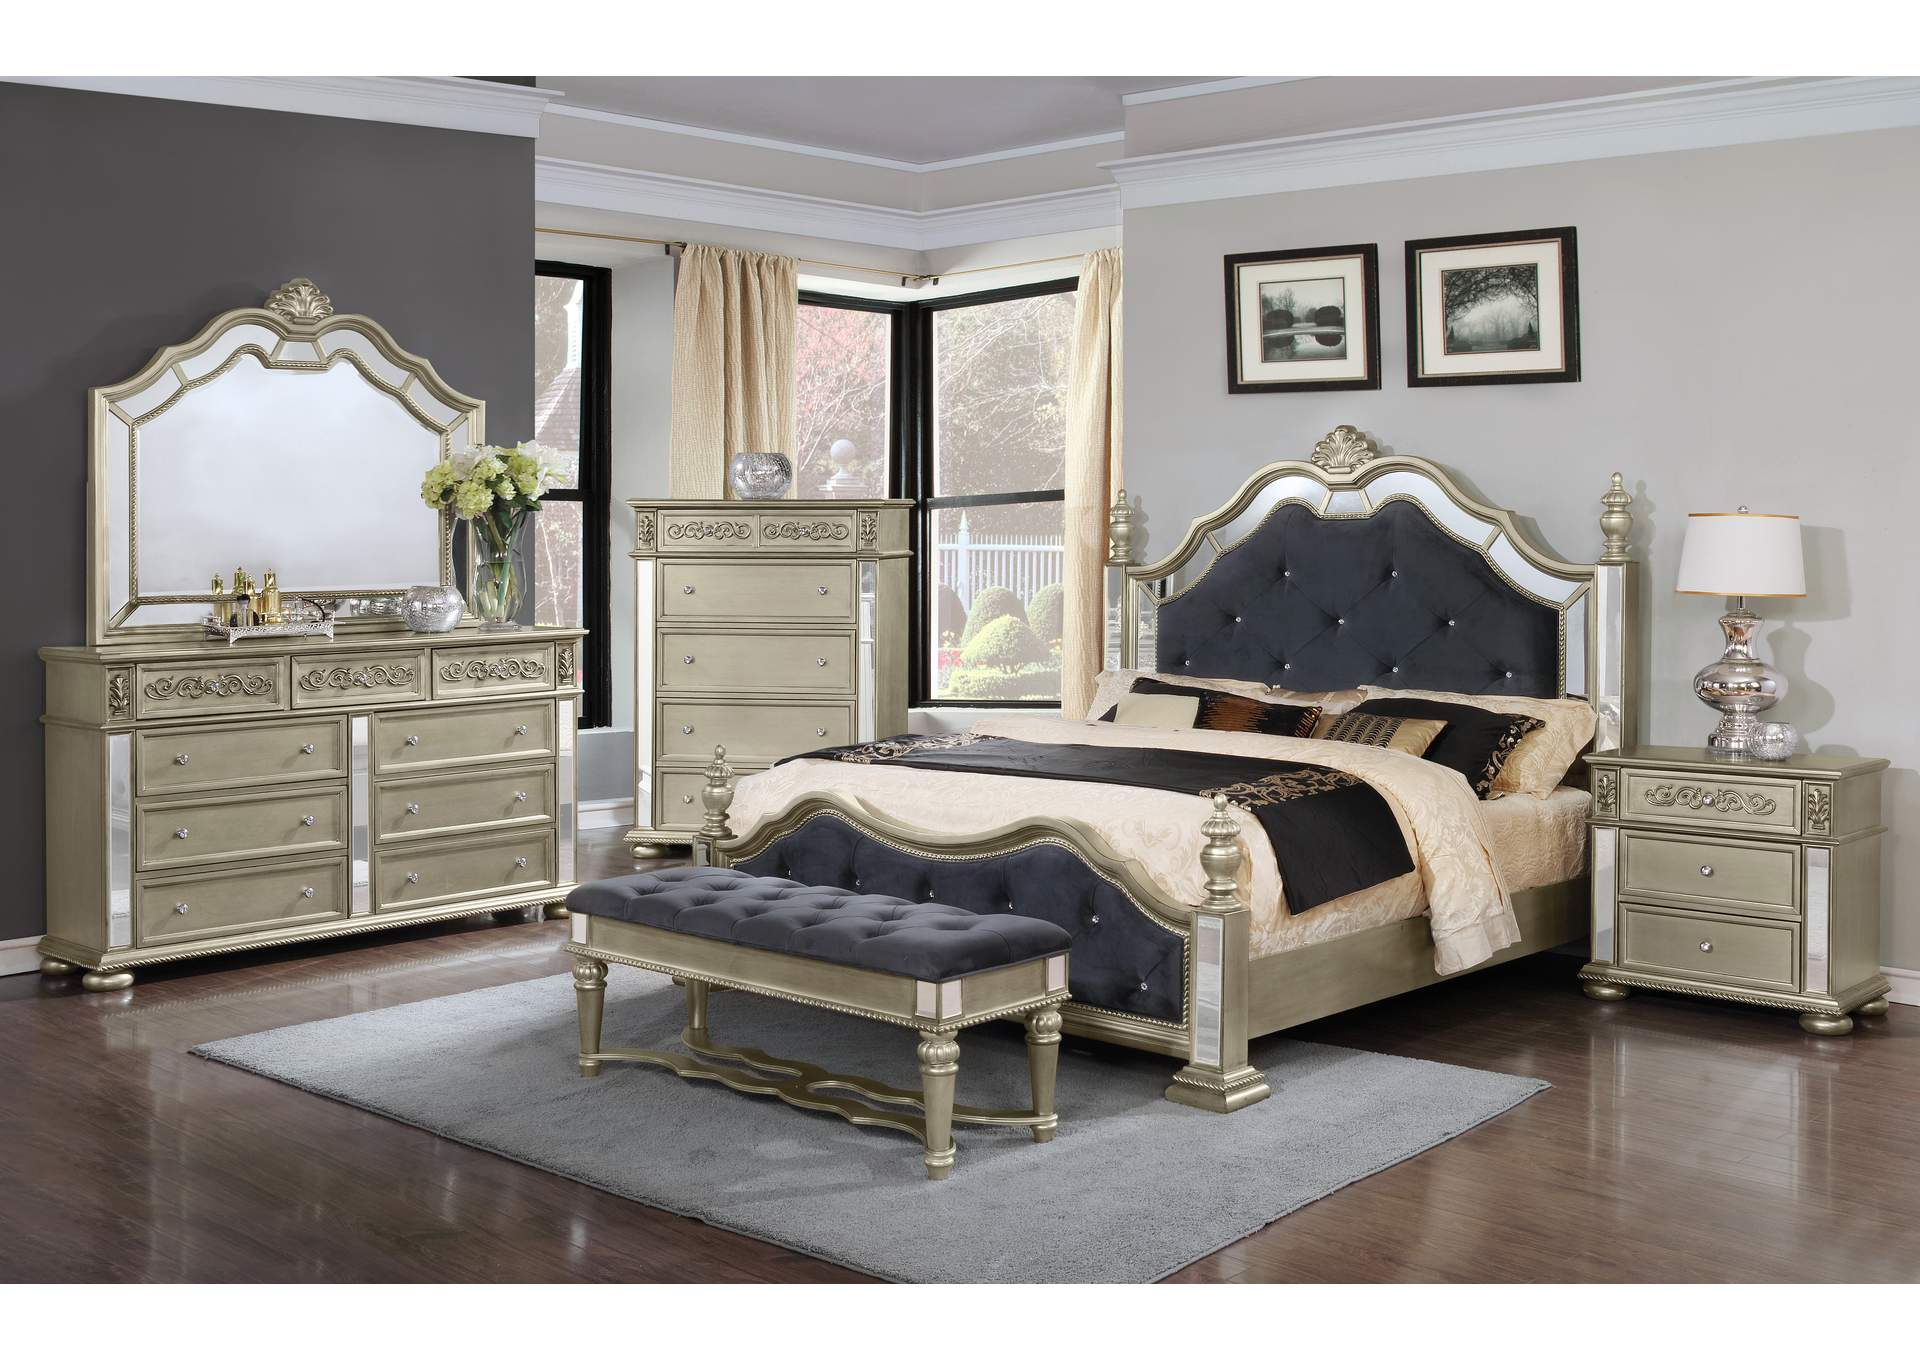 Silver Panel Queen 4 Piece Bedroom Set W/ Chest, Dresser & Mirror,Global Trading